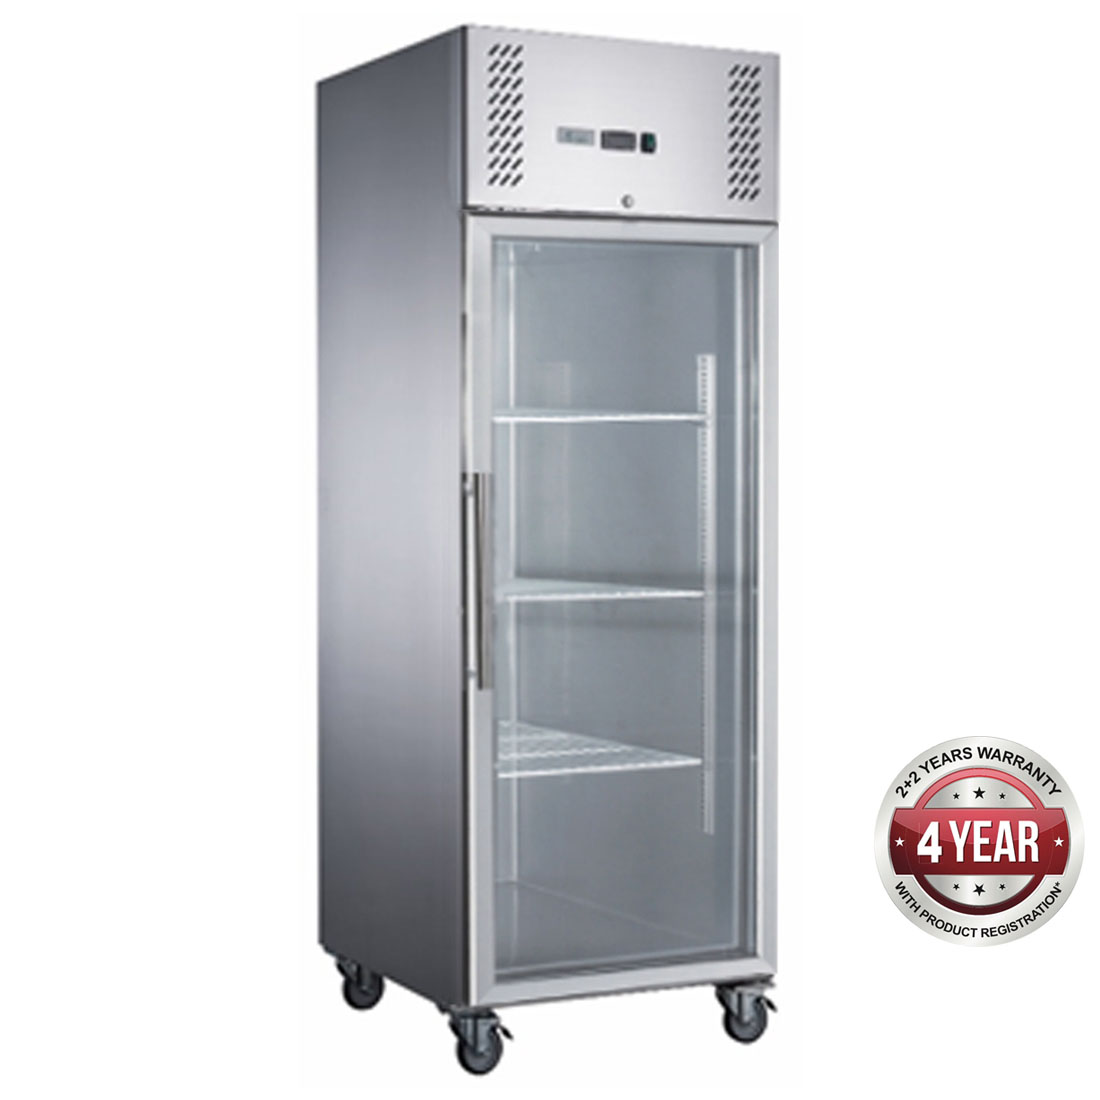 FED-X S/S Full Glass Door Upright Freezer - XURF600G1V